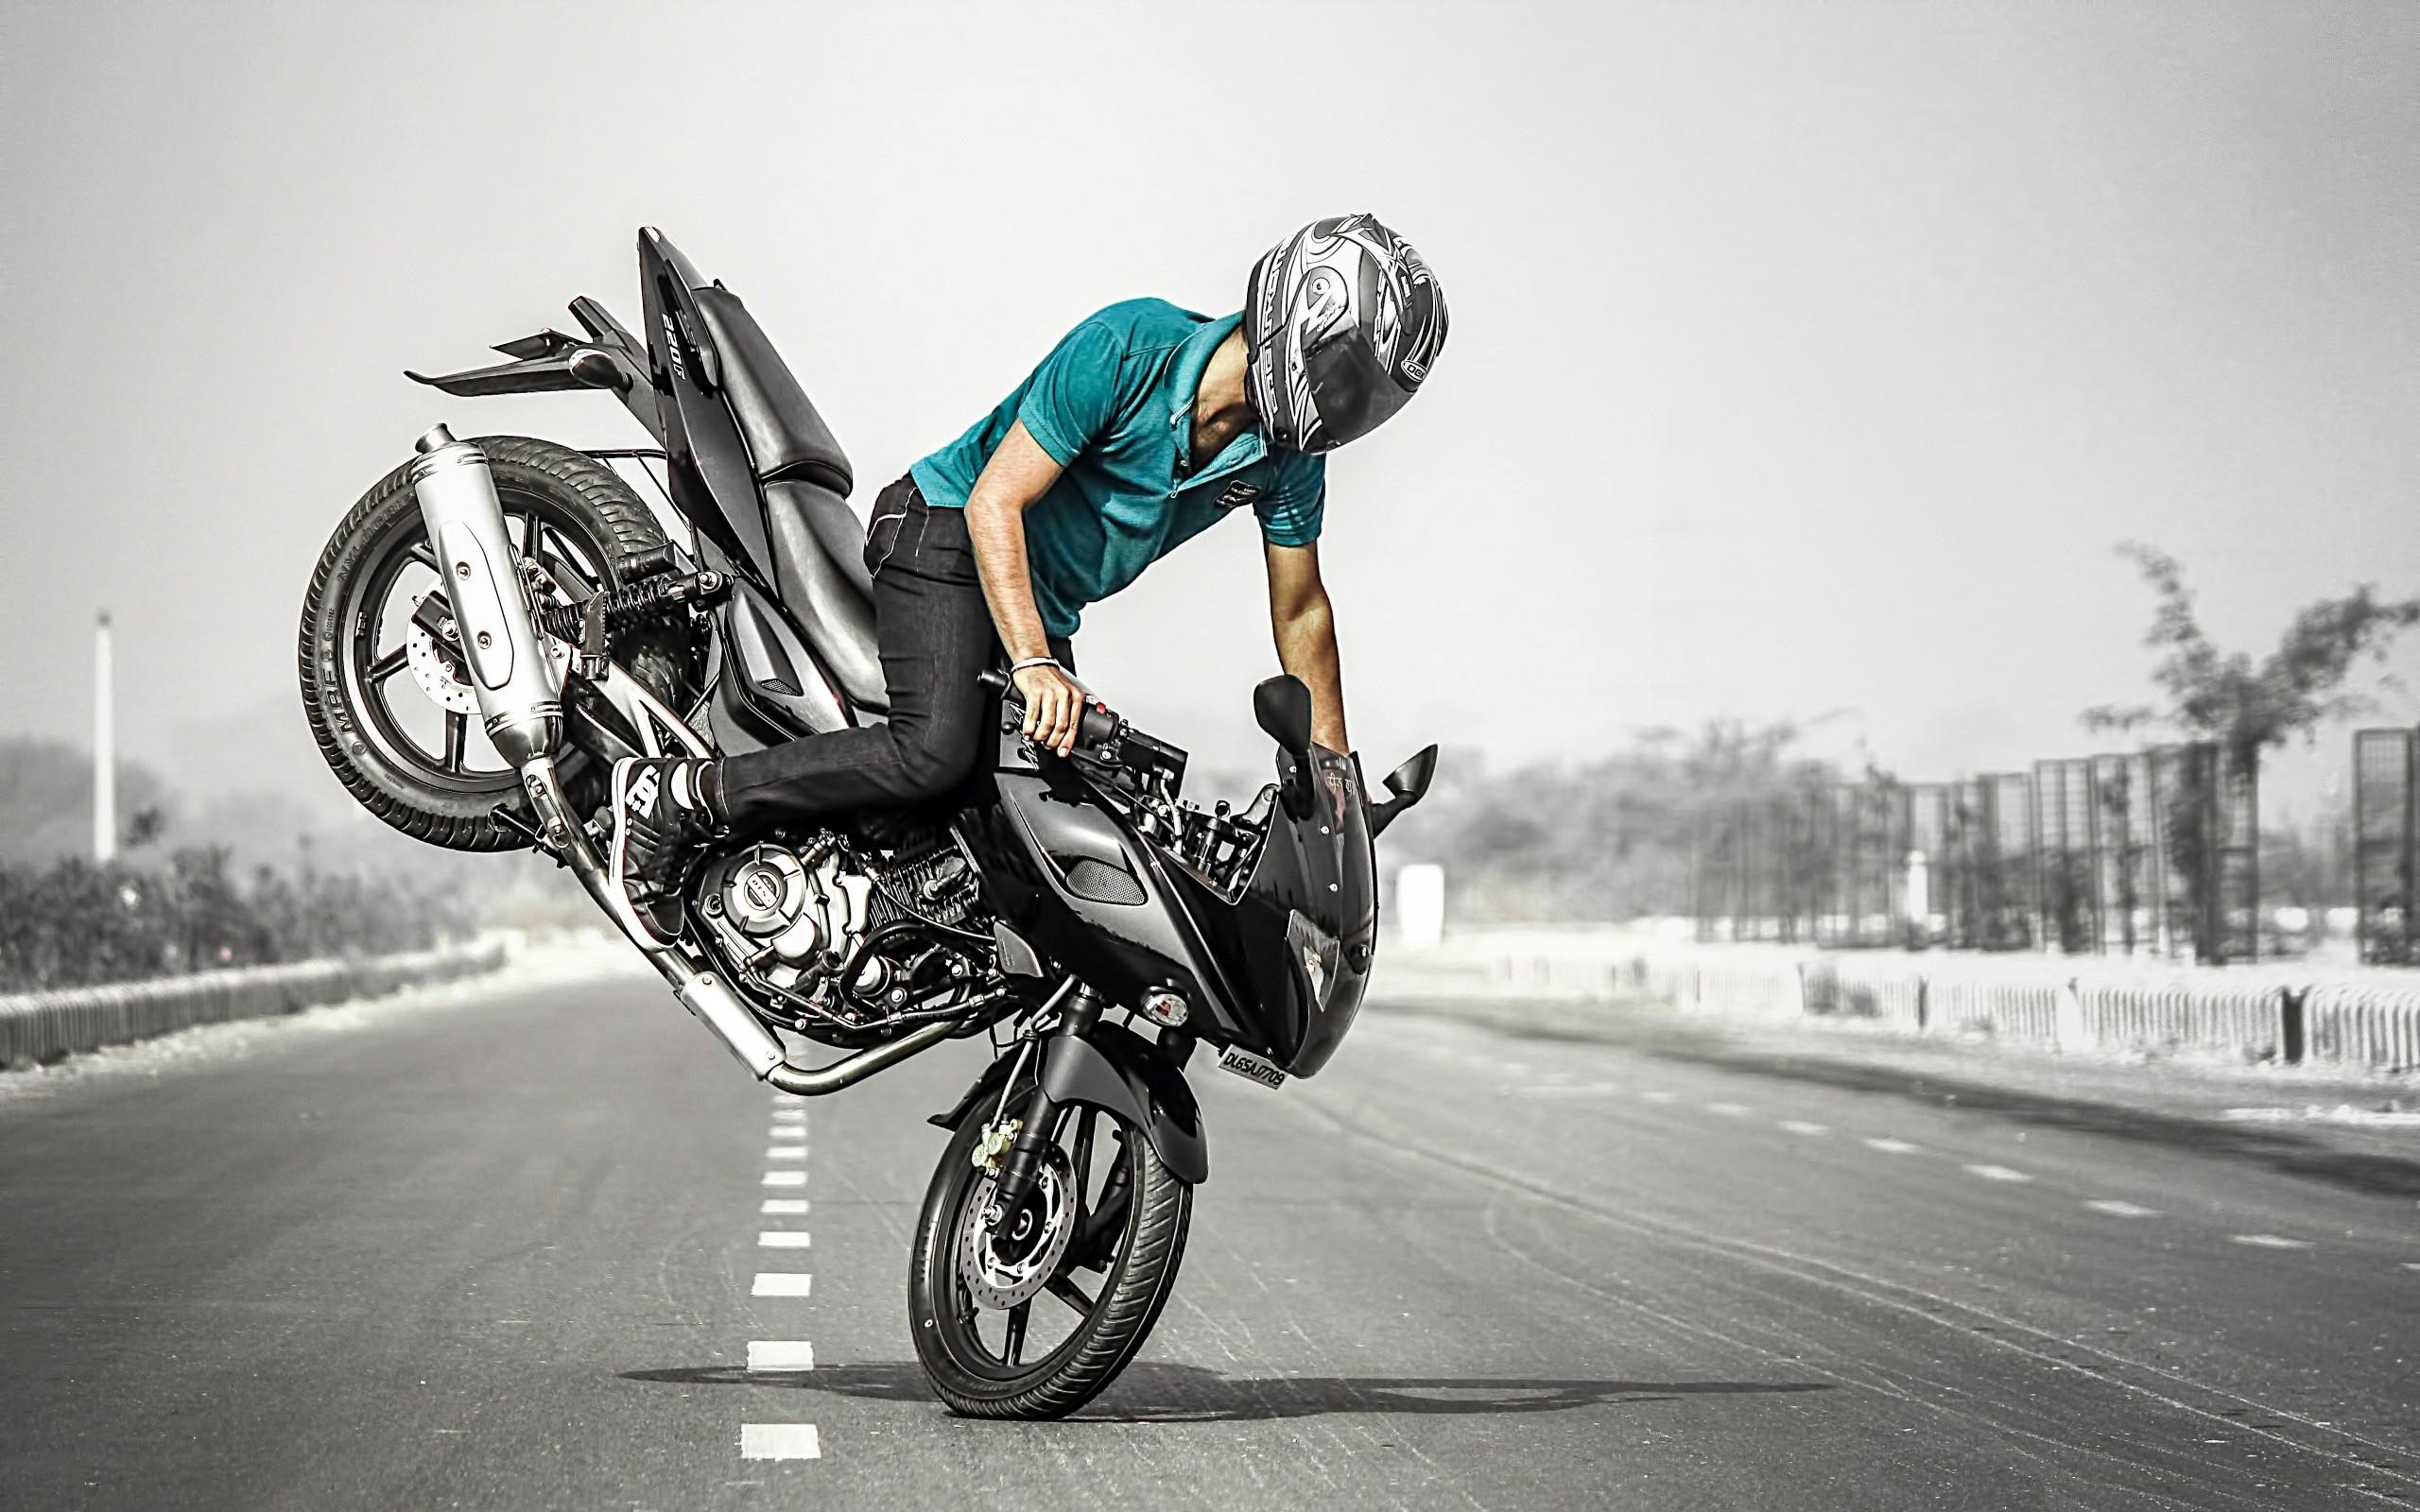 Bike Stunt Images Wallpapers